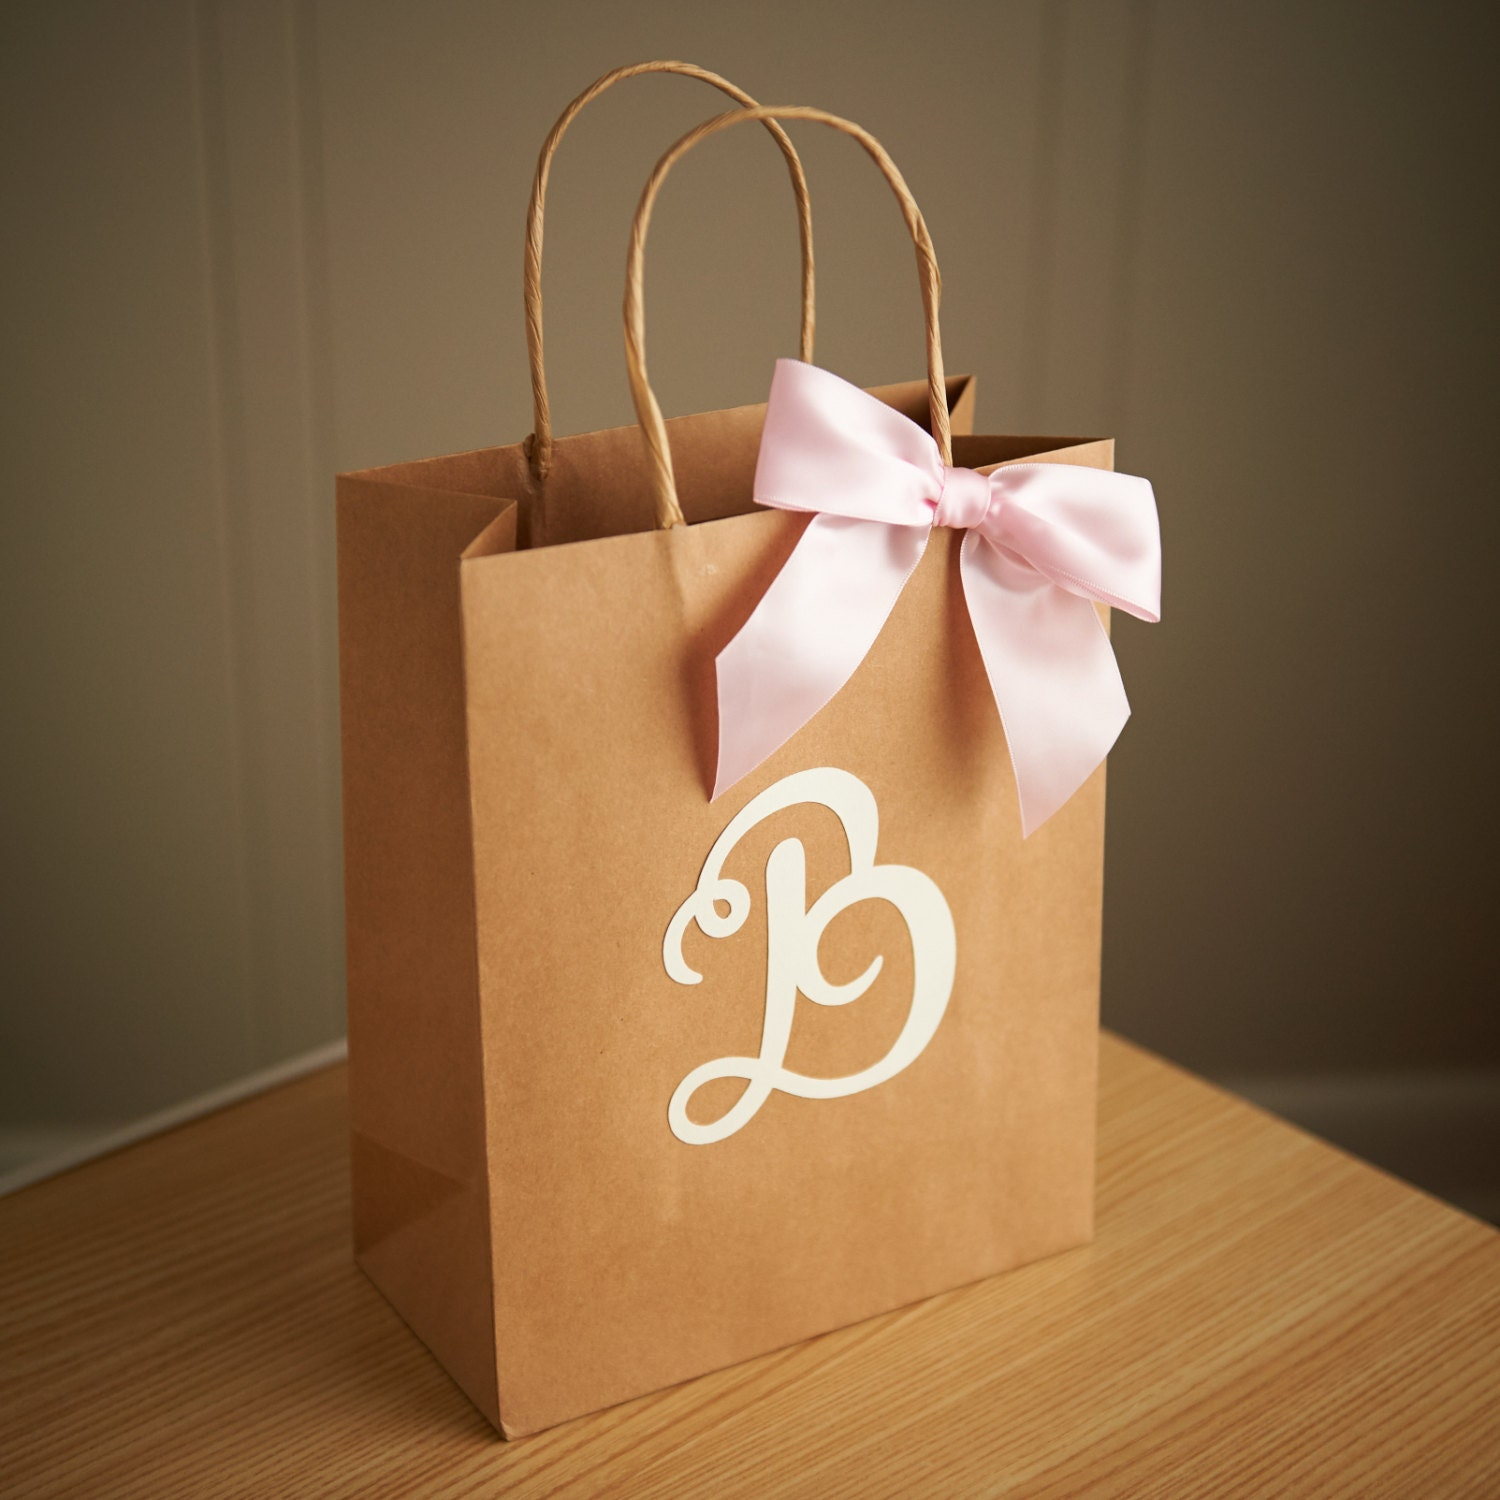 Wedding Paper Gift Bags: Gift Bags For Wedding Guests. Large Kraft Paper Bags With